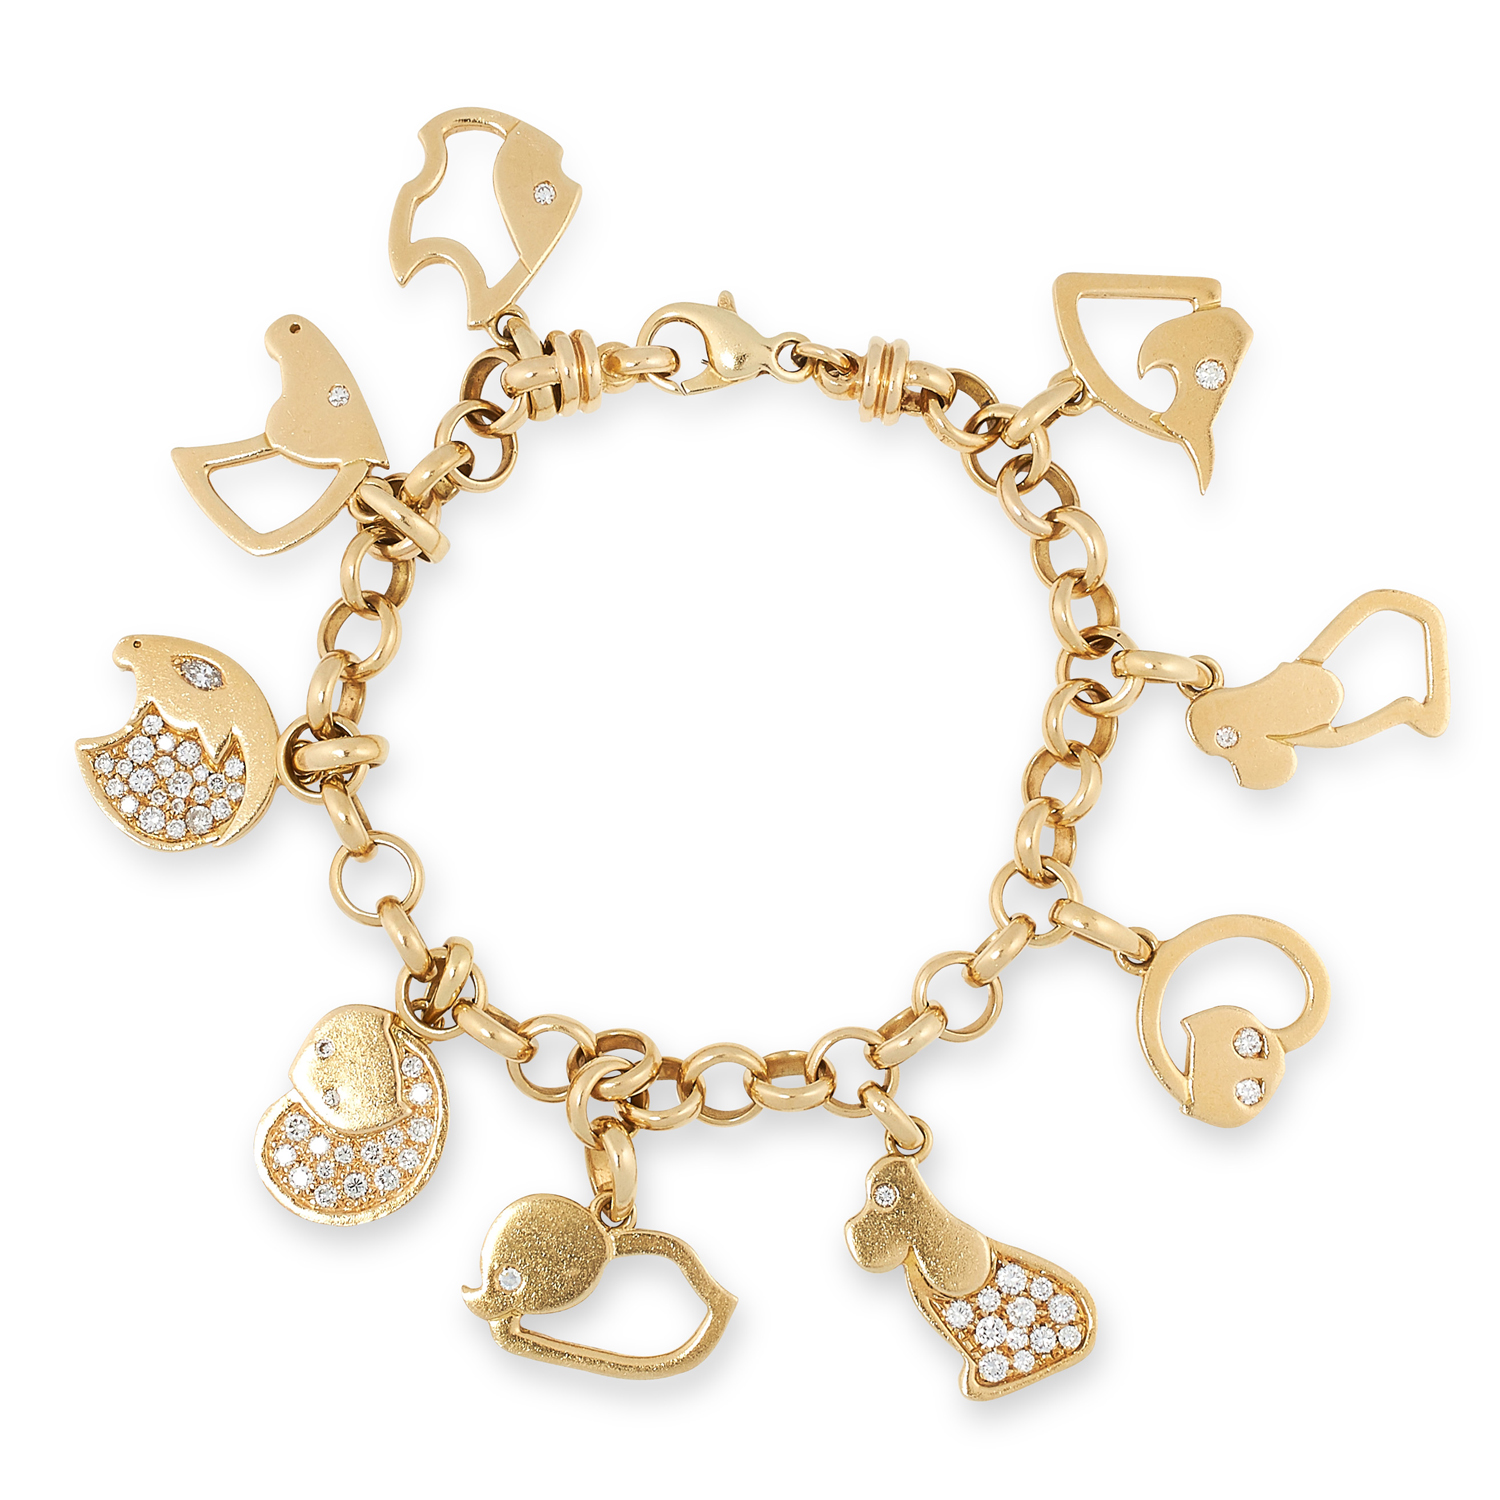 A GOLD AND DIAMOND ANIMAL CHARM BRACELET, MARINA B in 18ct yellow gold, suspending nine various